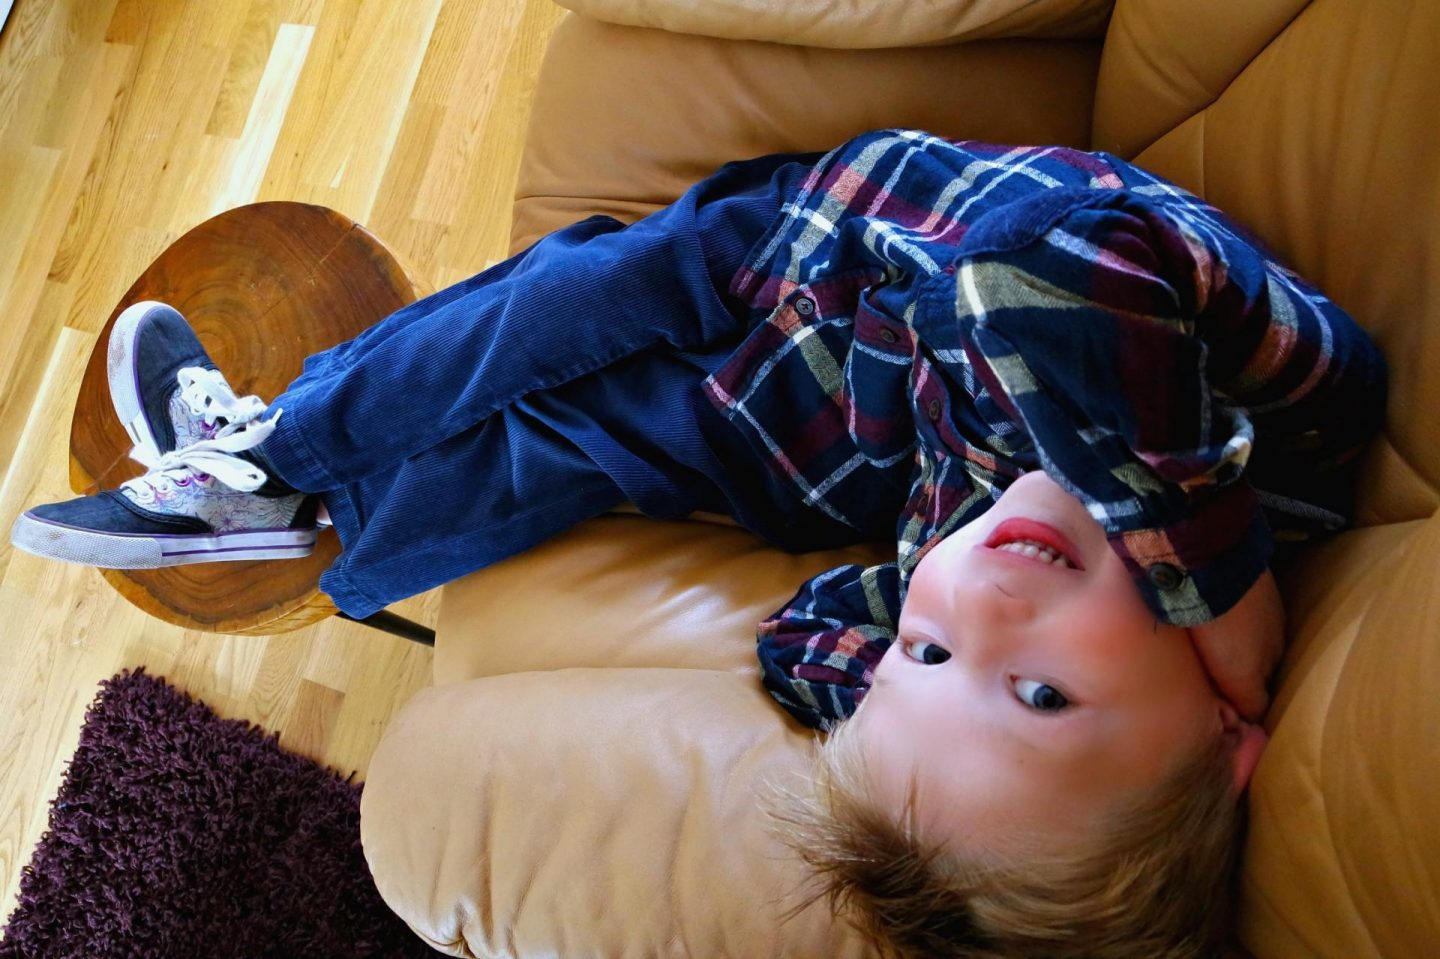 Little boy in blue jeans and shirt smiling, upside down at the camera.